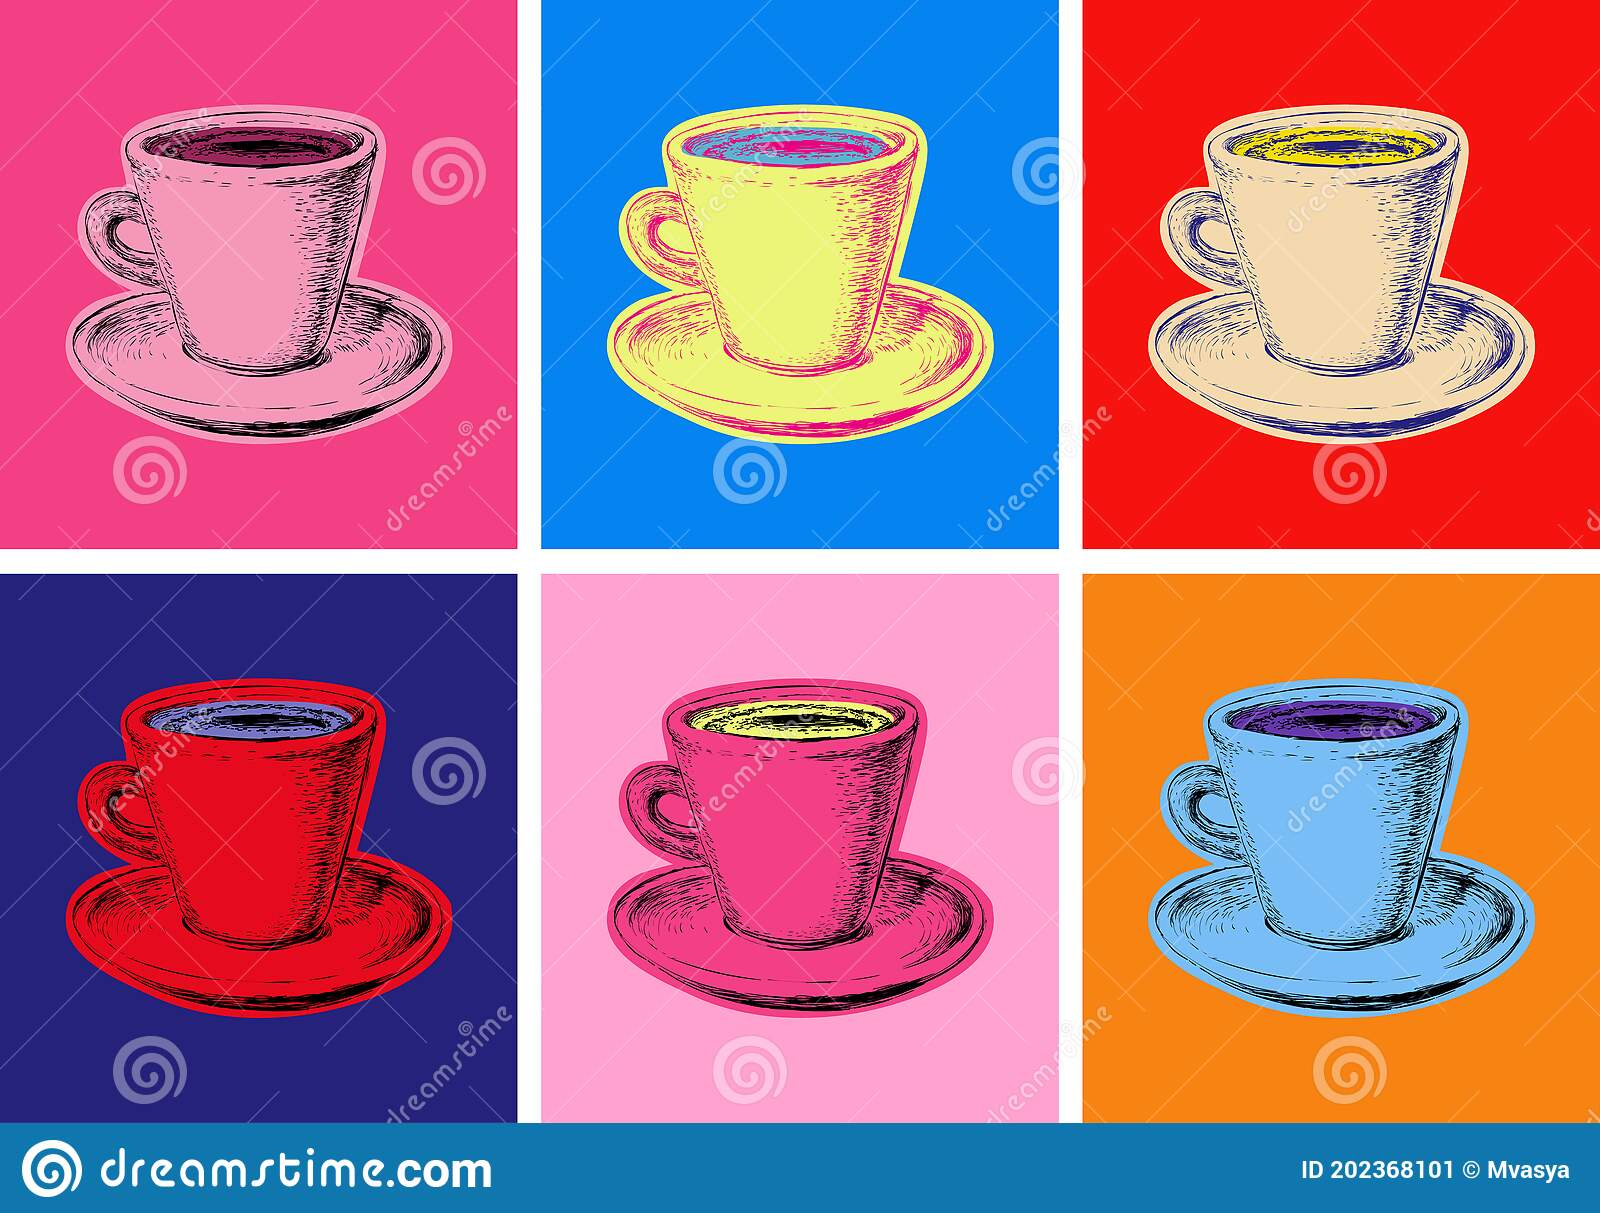 Coffee Mug Vector Stock Illustrations